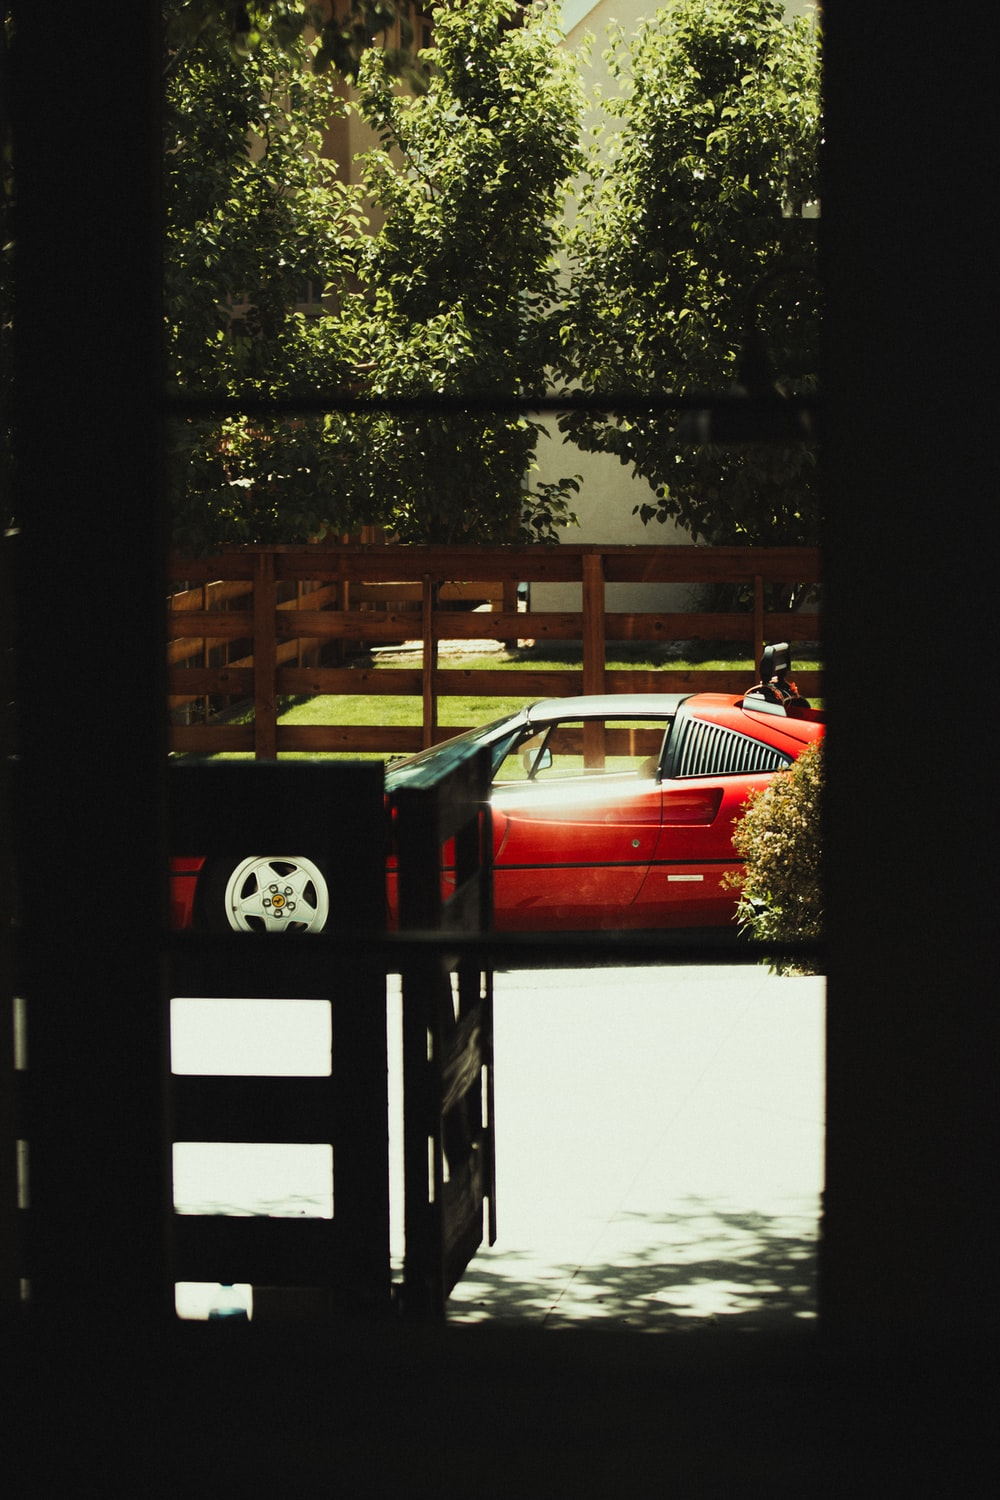 red car parked near green tree during daytime